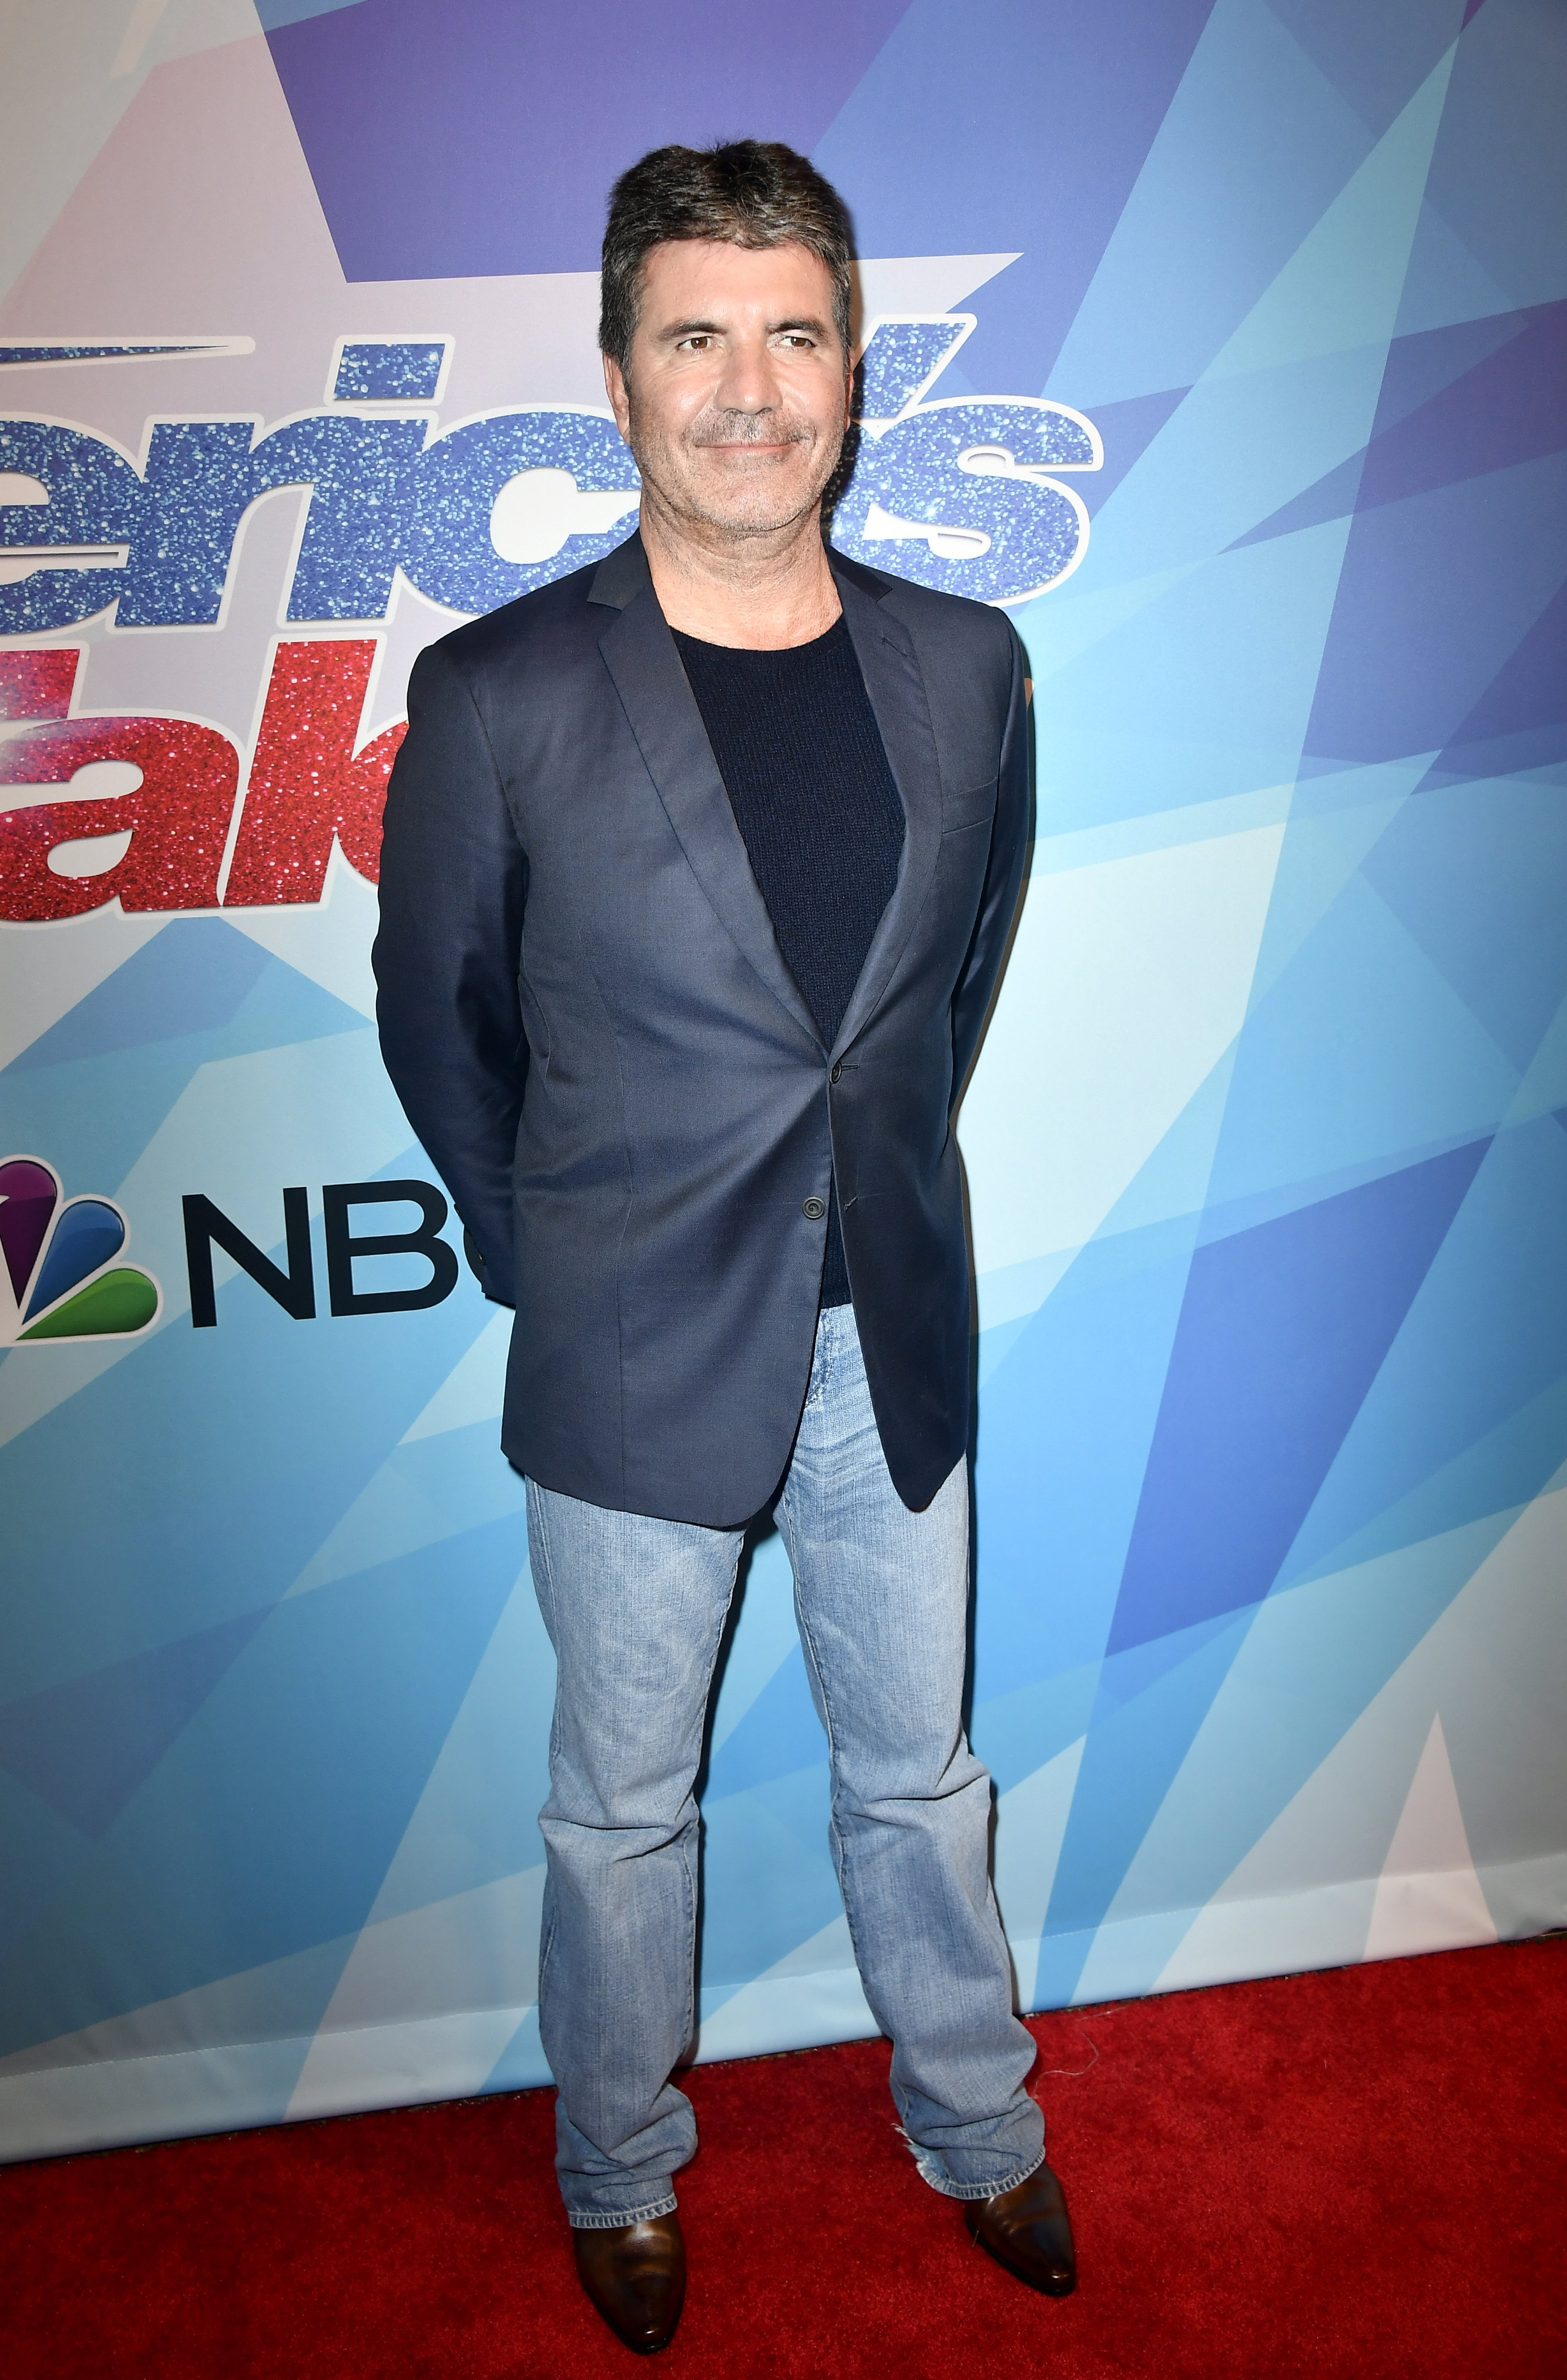 Simon Cowell attends the Premiere Of NBC's 'America's Got Talent' Season 12 at Dolby Theatre on August 15, 2017 in Los Angeles